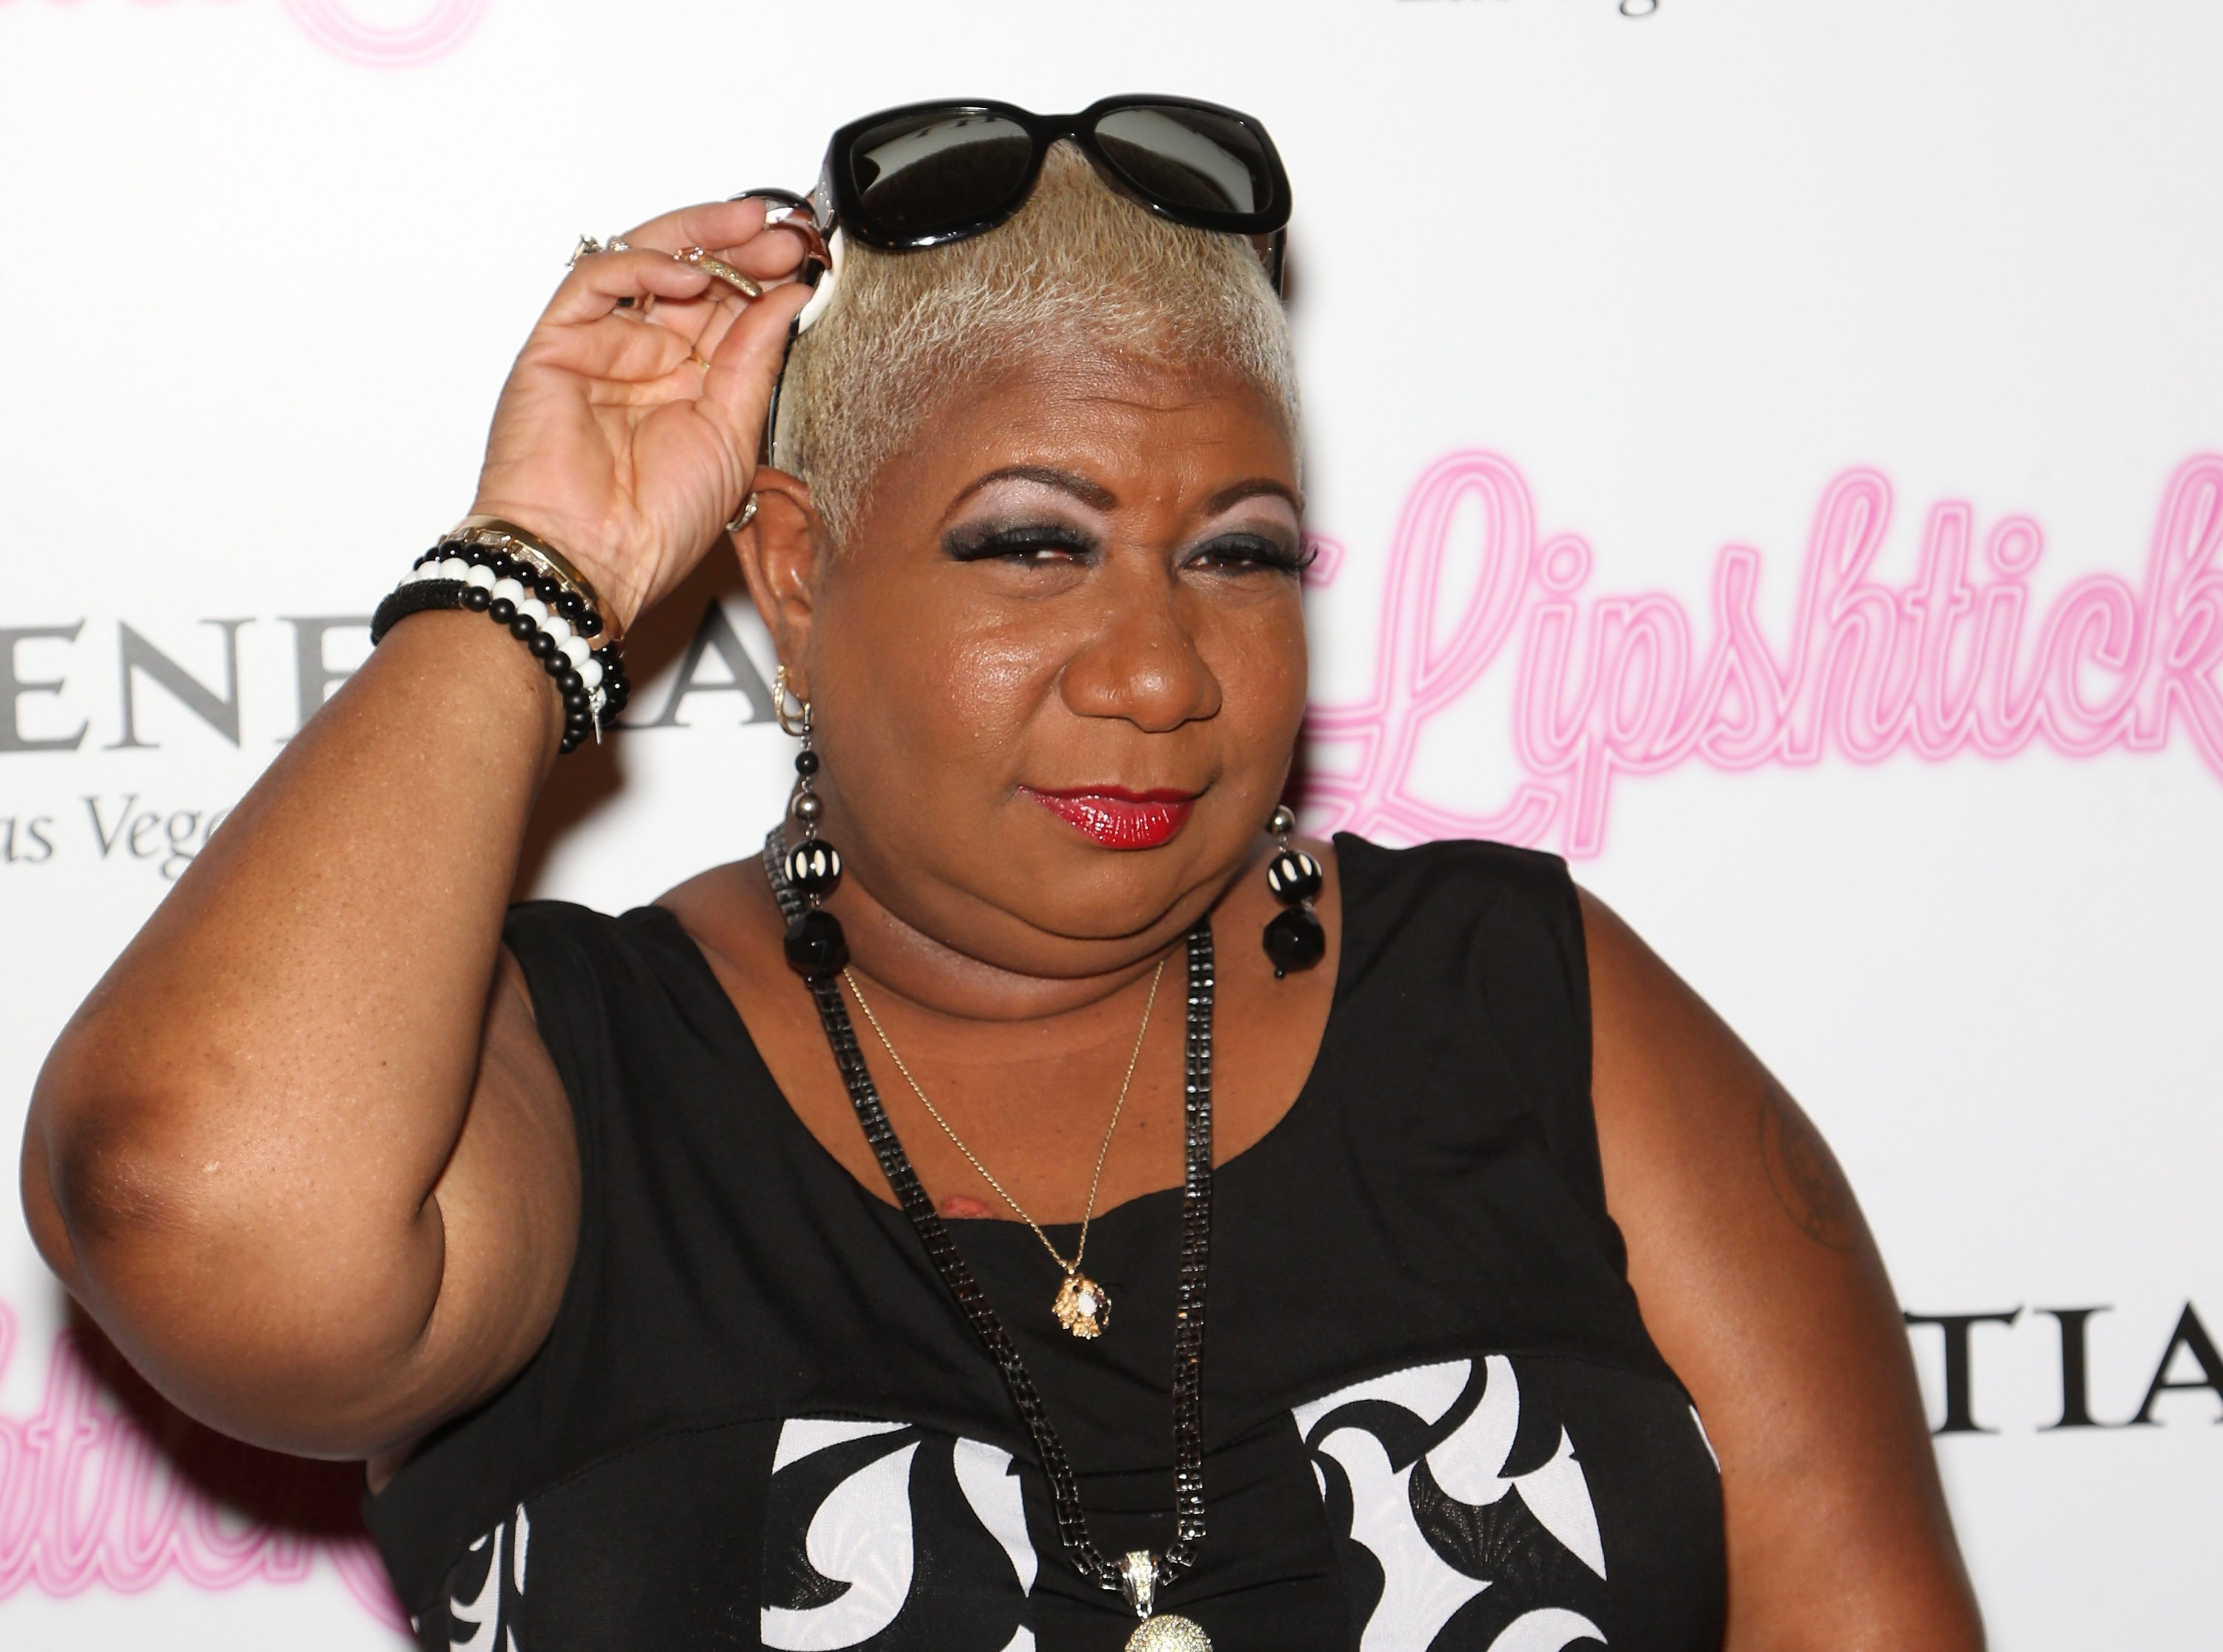 """Luenell at the debut of """"Lipshtick - The Perfect Shade of Stand-Up"""" at The Venetian Las Vegas on July 11, 2014 in Las Vegas, Nevada   Photo: Getty Images"""